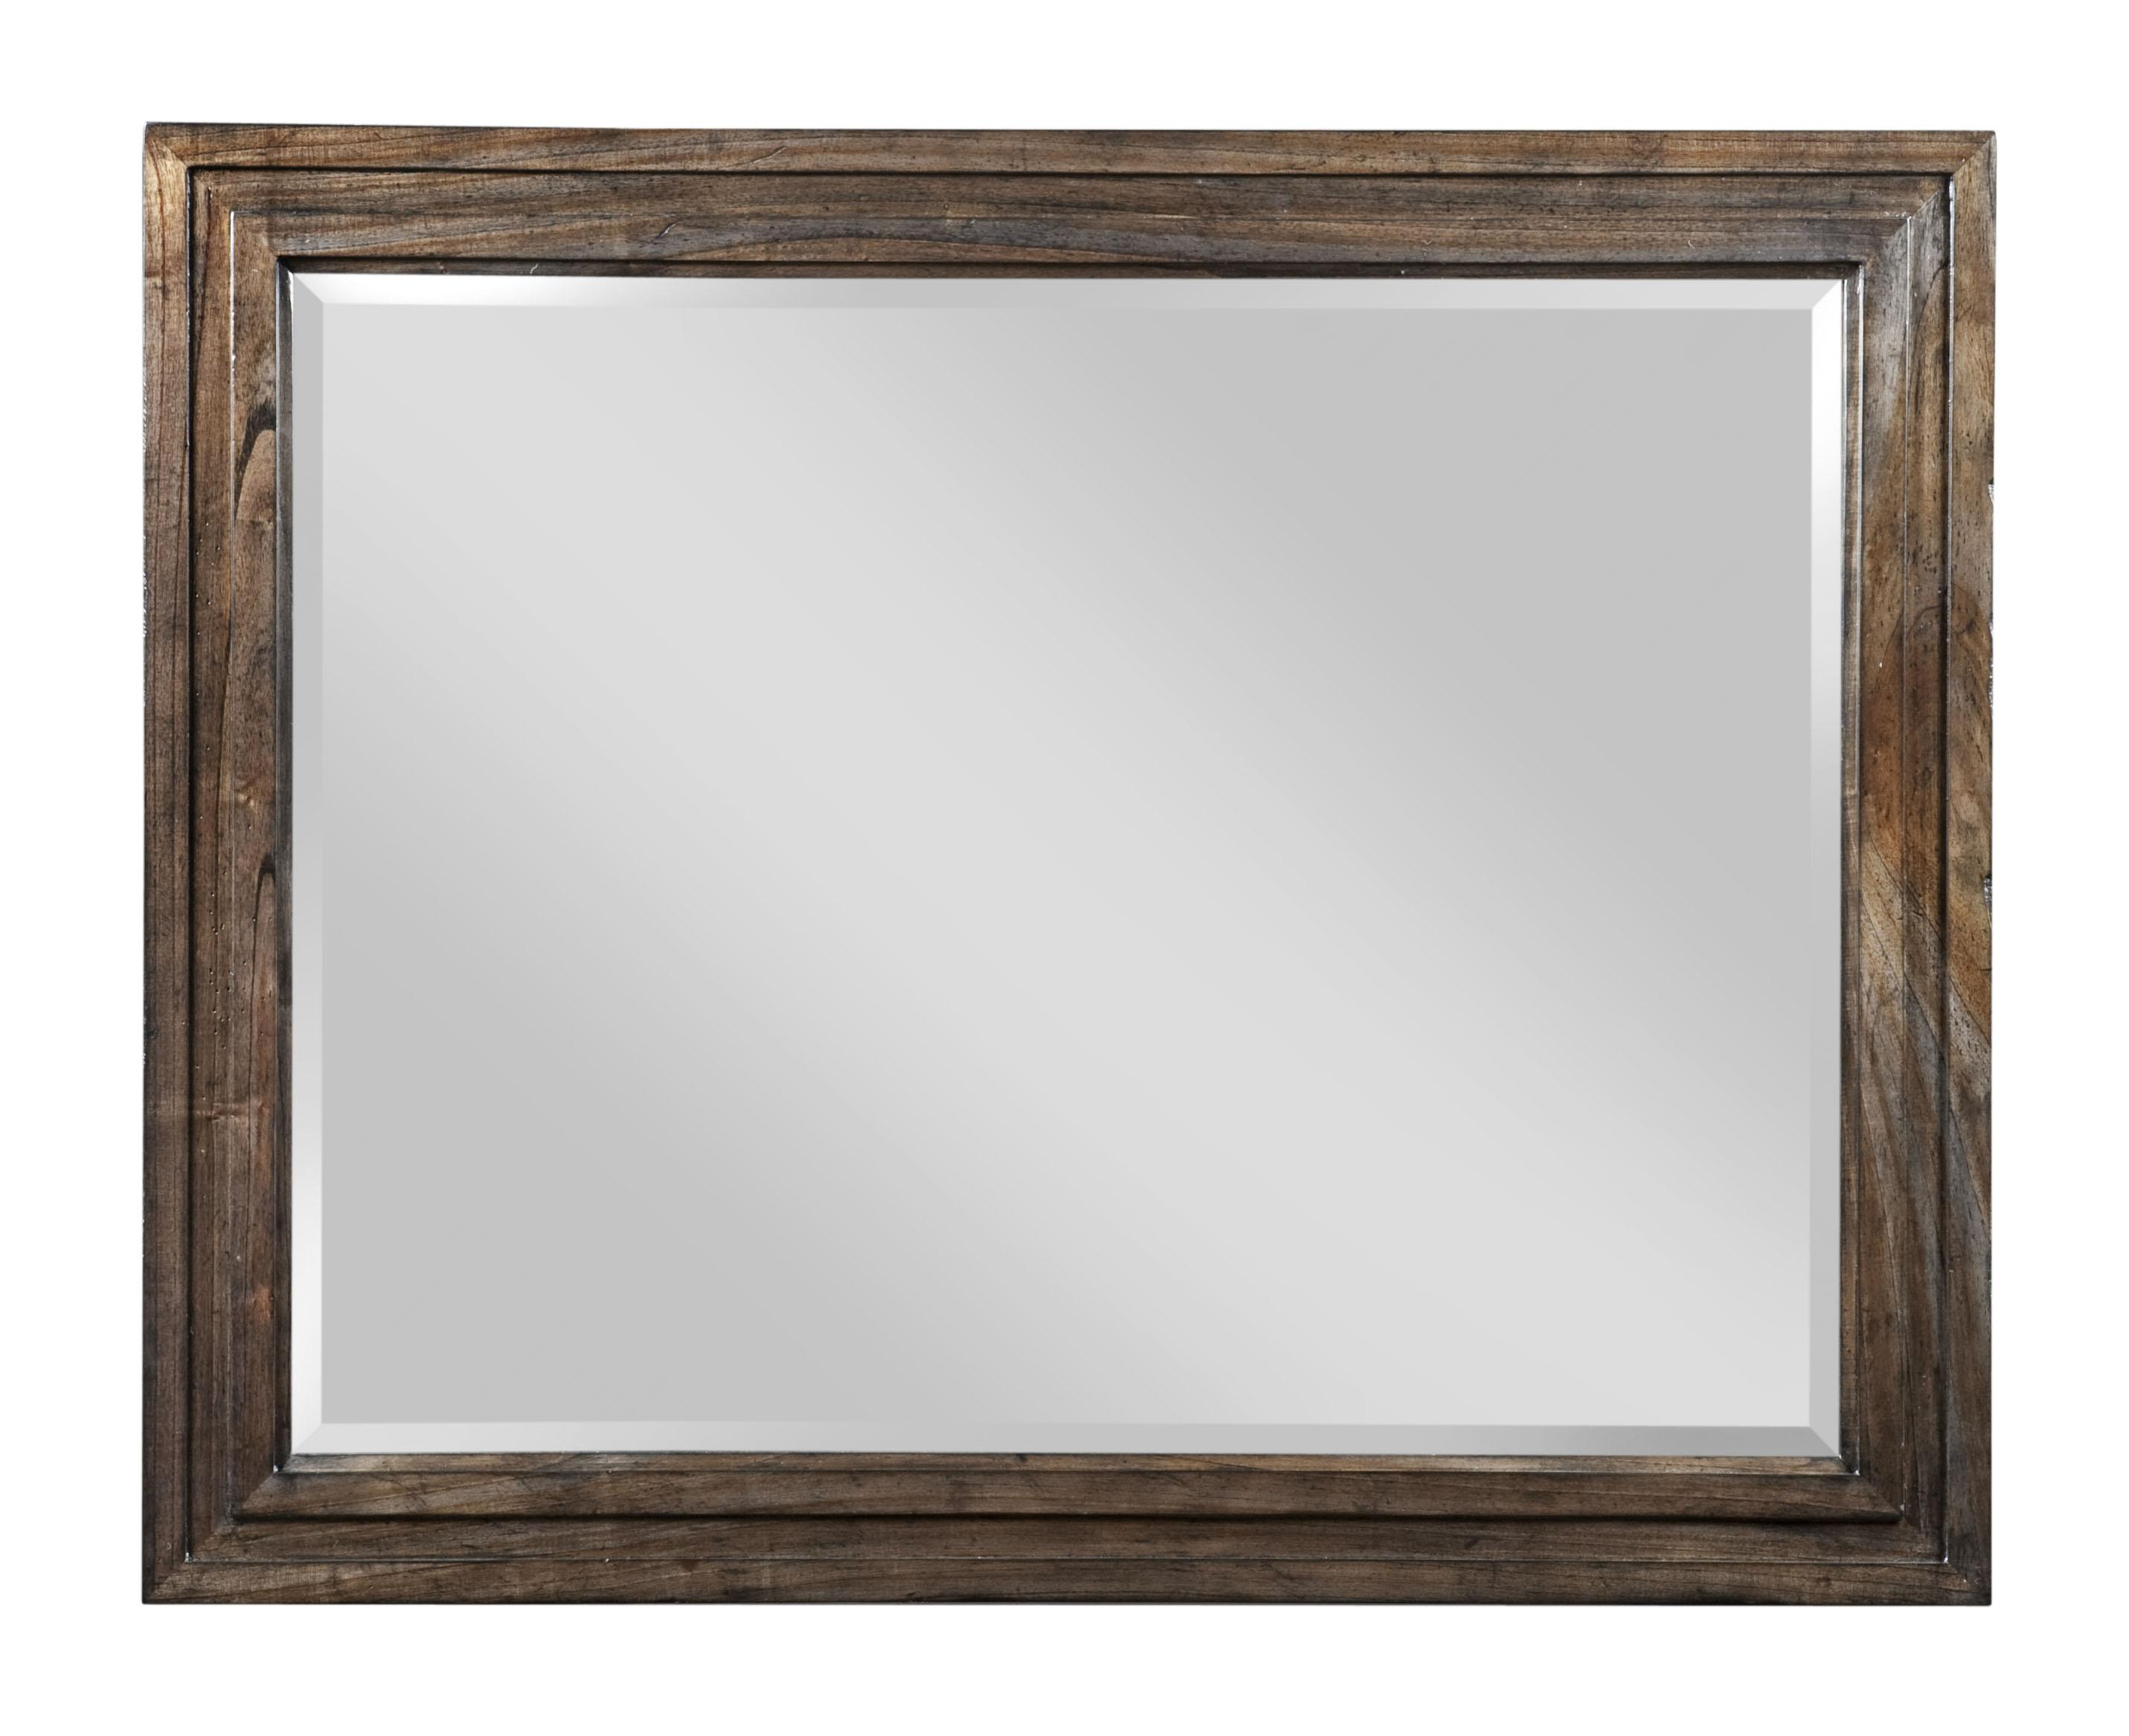 Kincaid Furniture Montreat Track Mirror - Item Number: 84-118